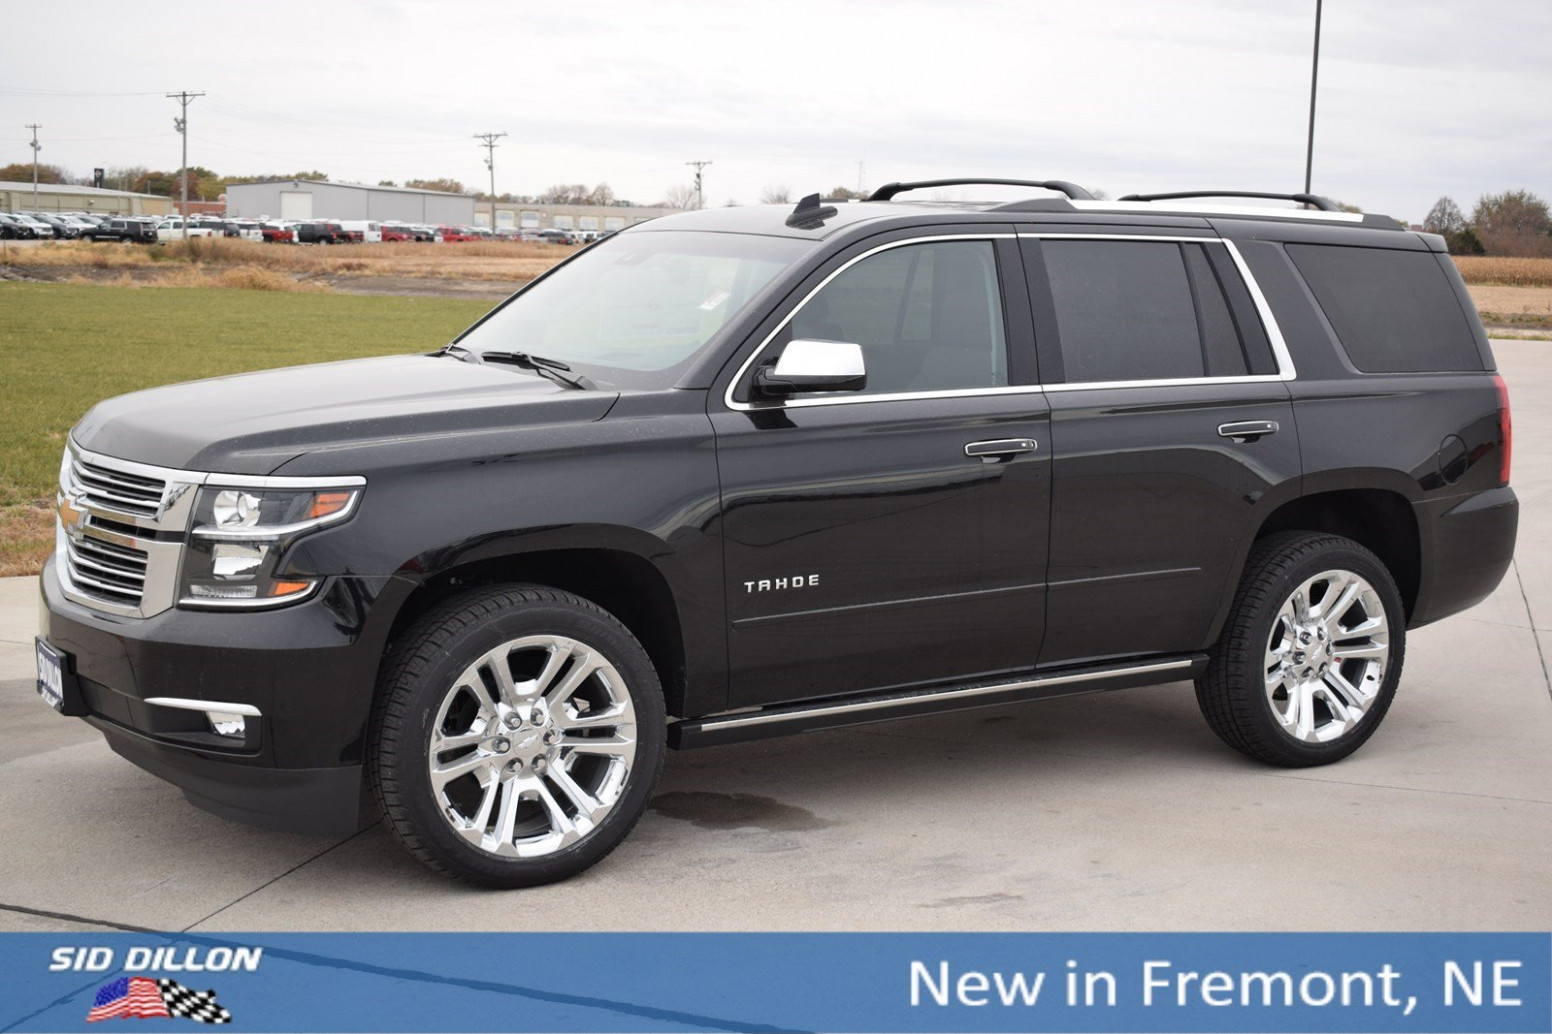 New 11 Chevrolet Tahoe Premier With Navigation & 11WD | 2020 Chevrolet Tahoe